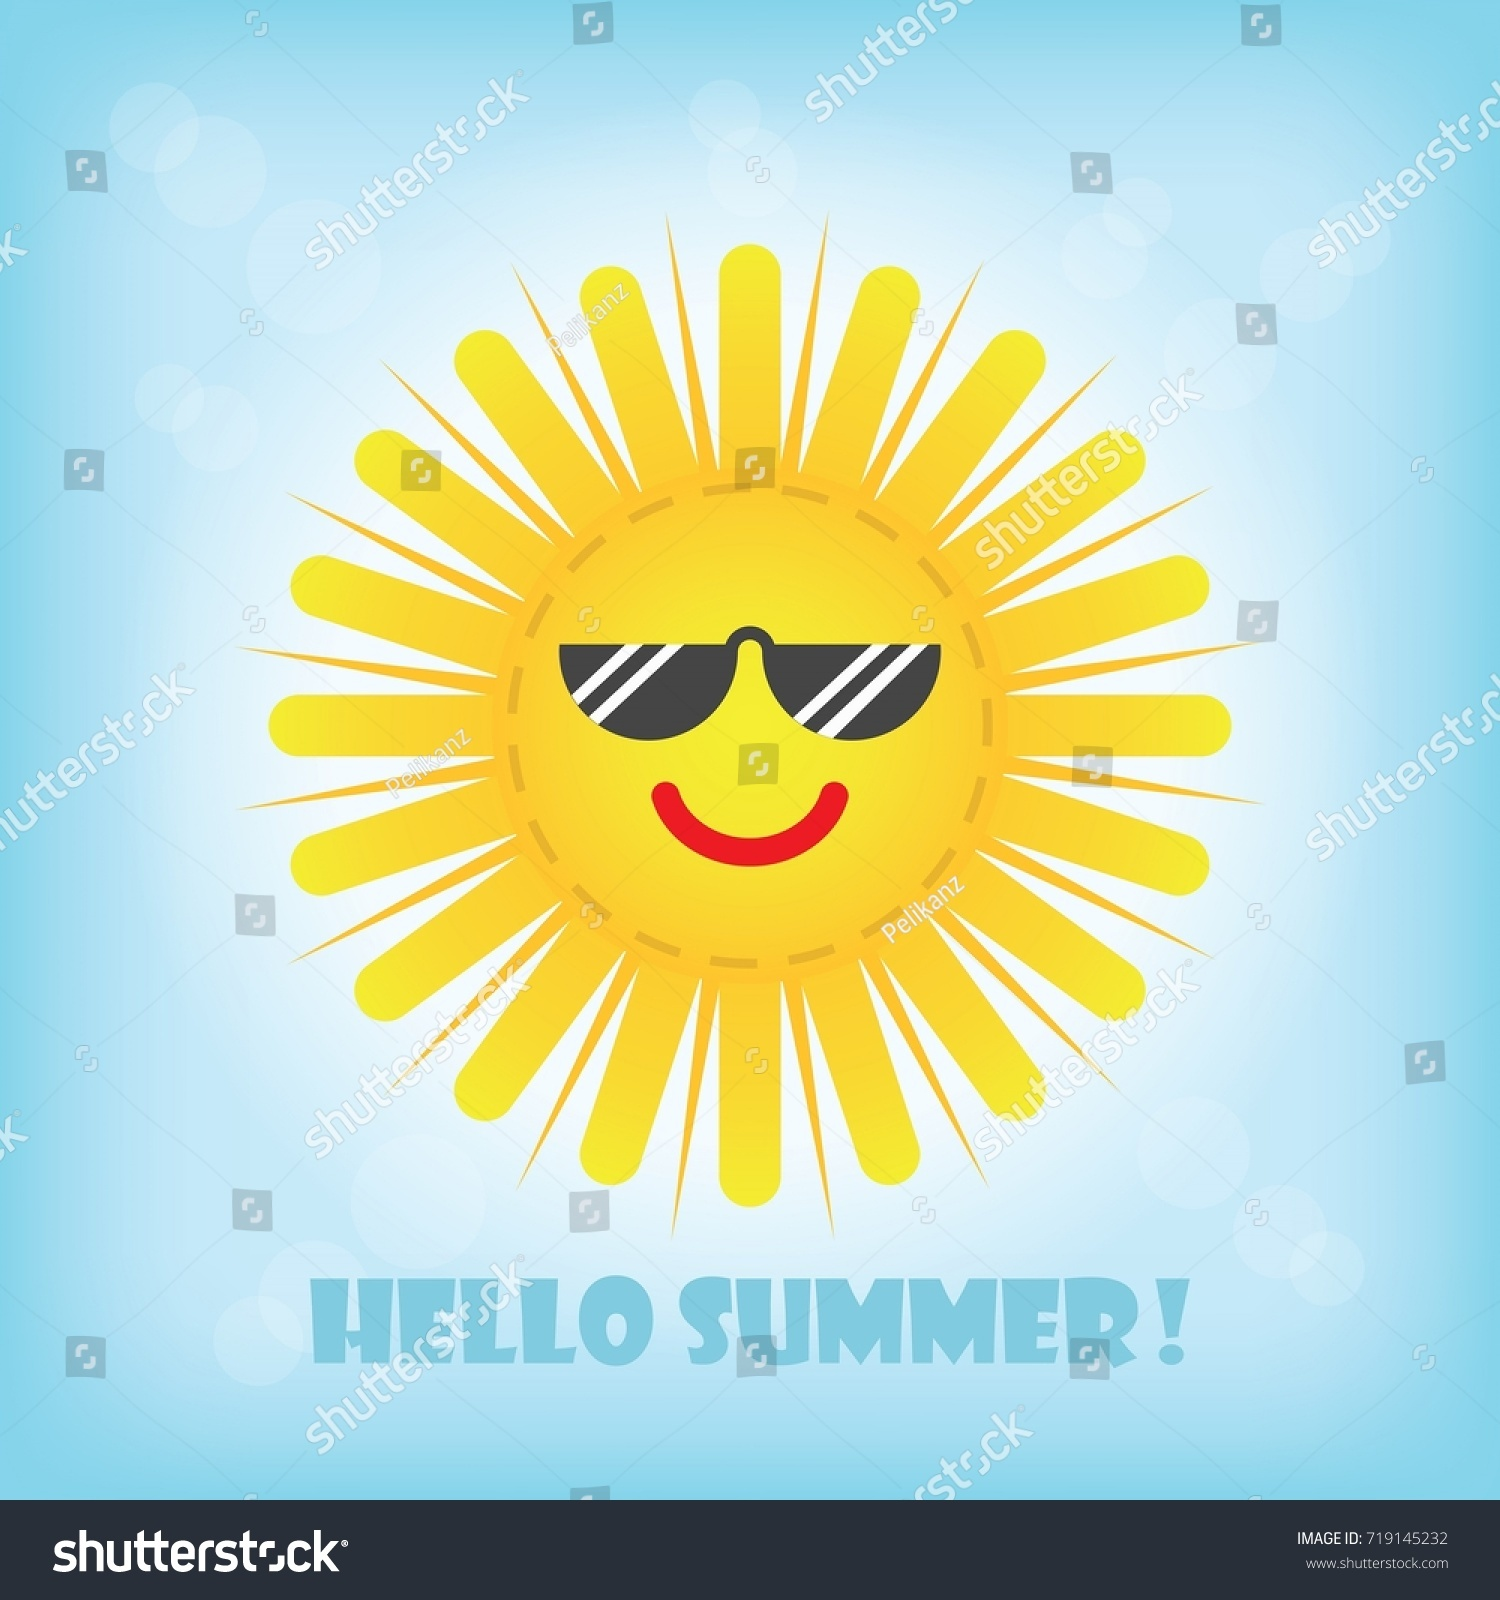 Hello Summer Smiling Yellow Sun Emoji Icon With Sunglasses In The Blue Sky